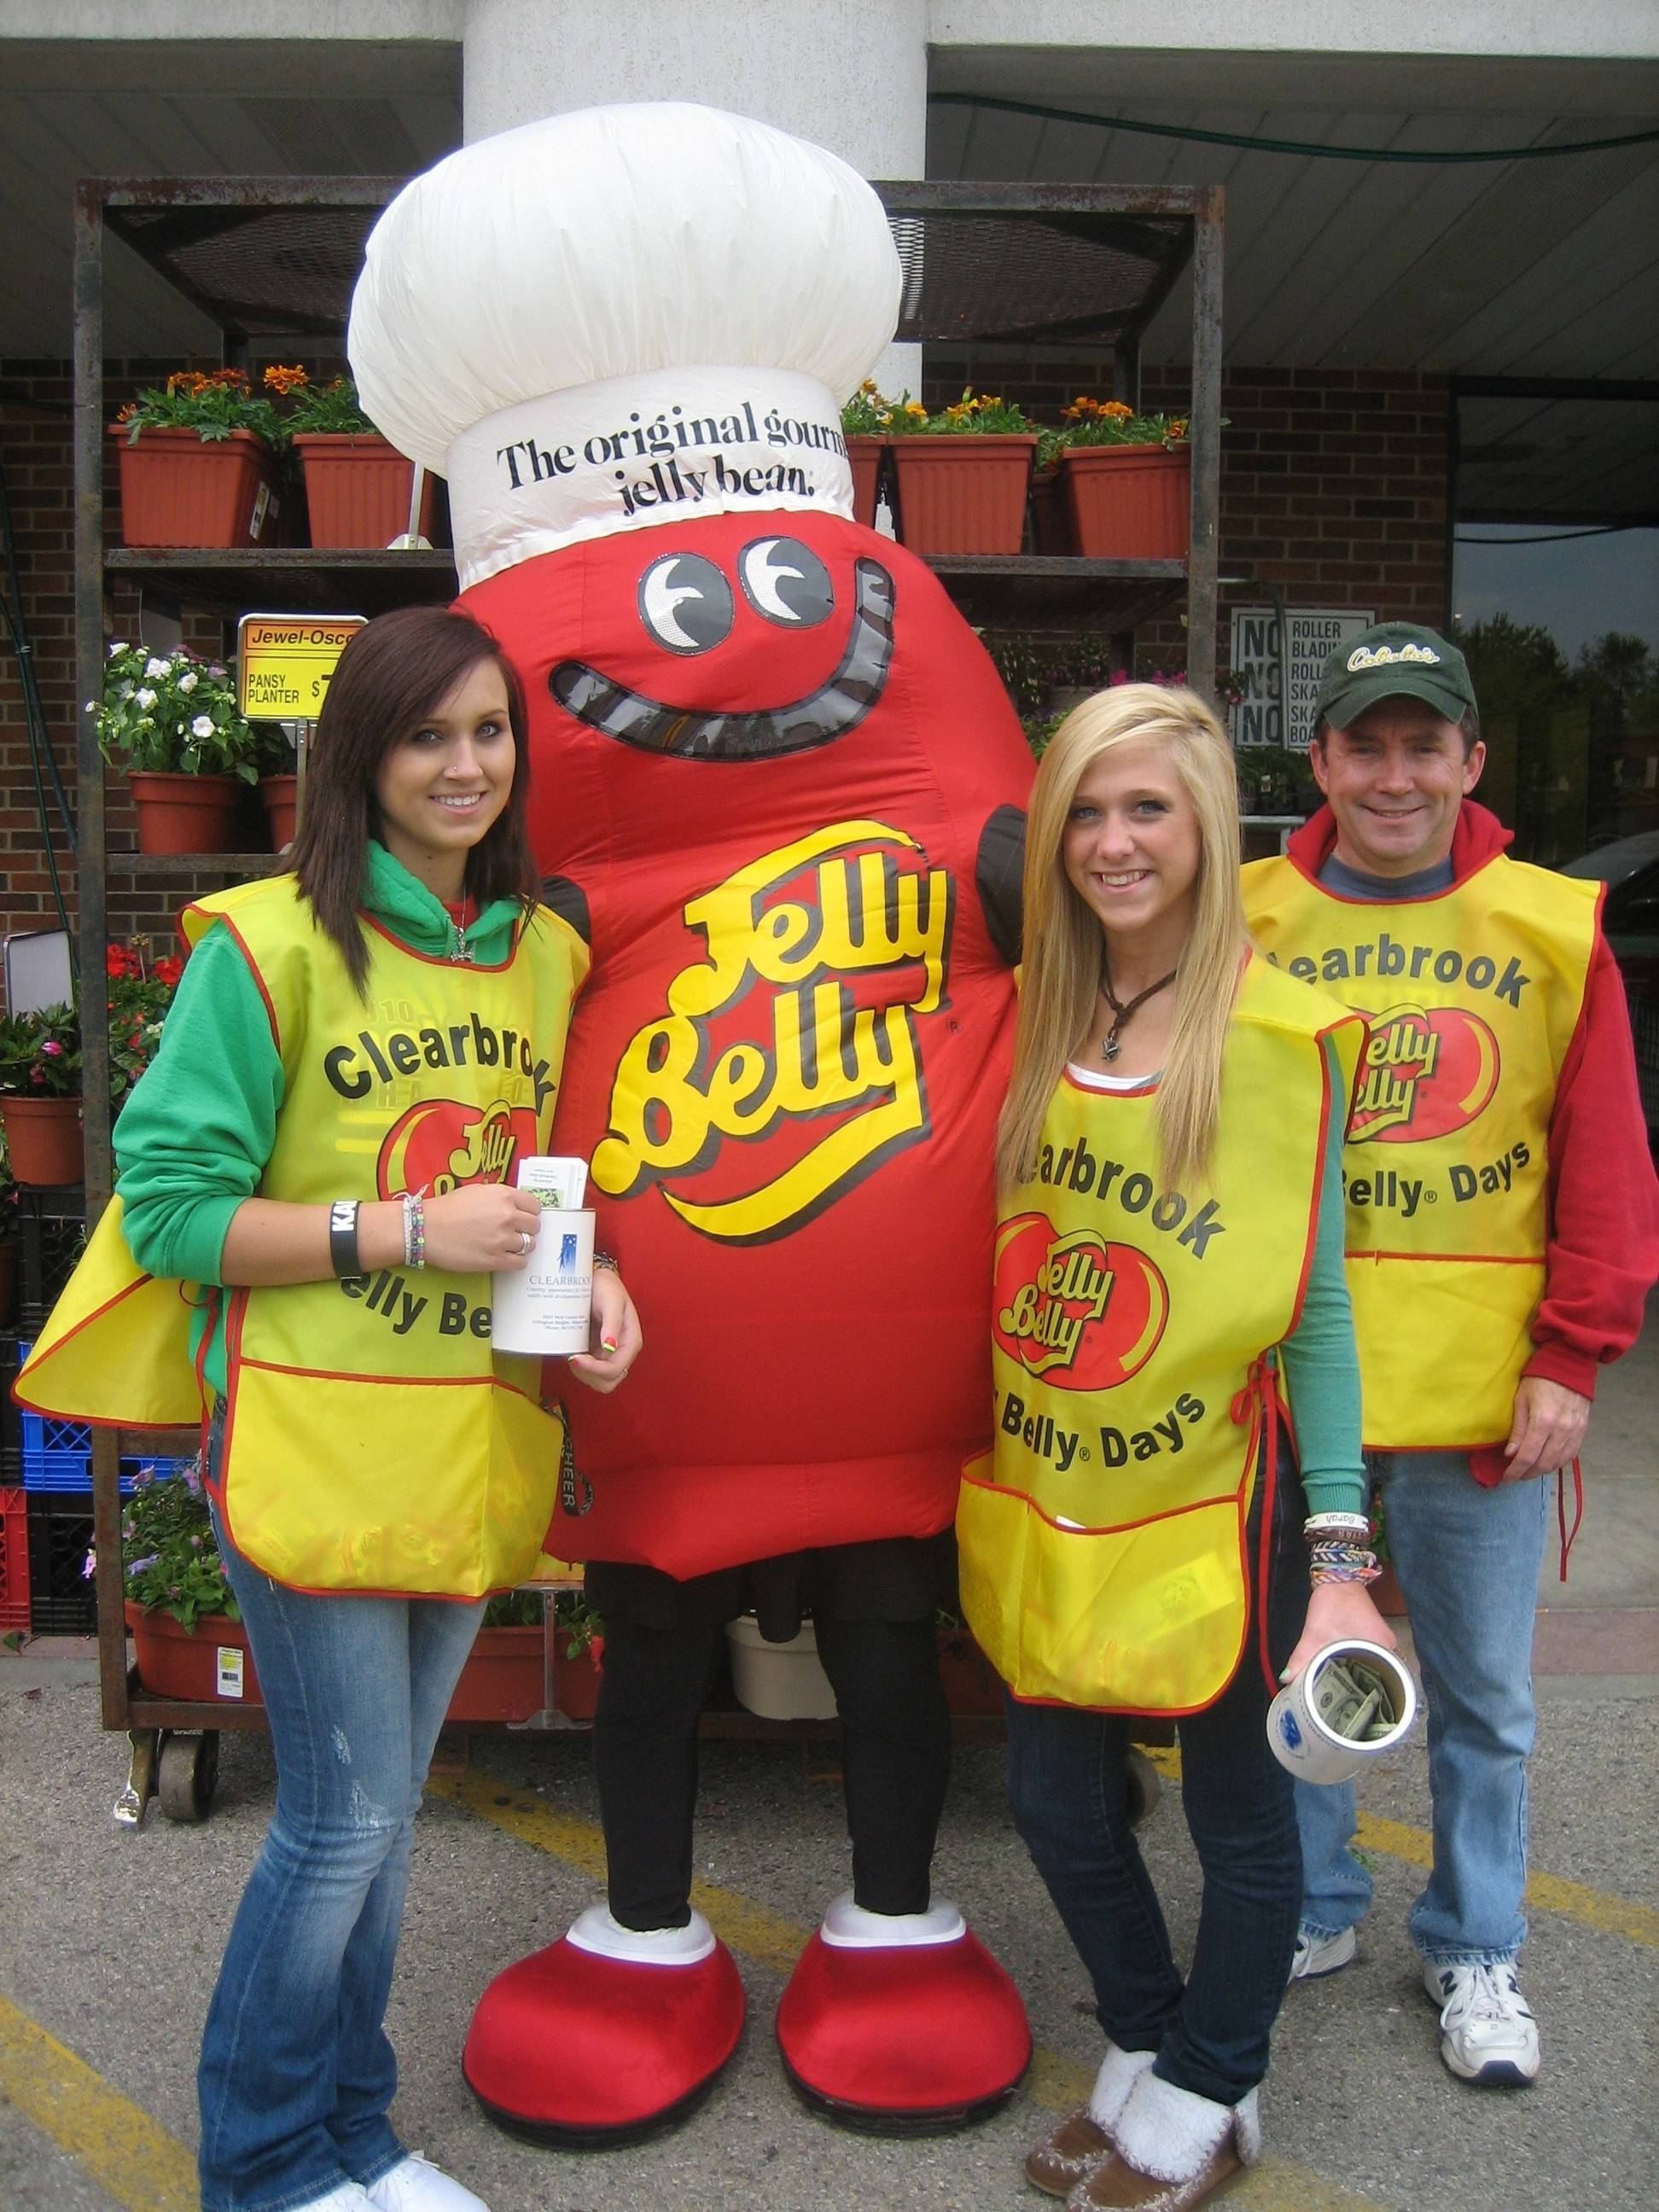 Clearbrook is seeking volunteers to hand out packets of Jelly Belly beans while collecting money at store fronts and intersections to benefit children and adults with intellectual/developmental disabilities.